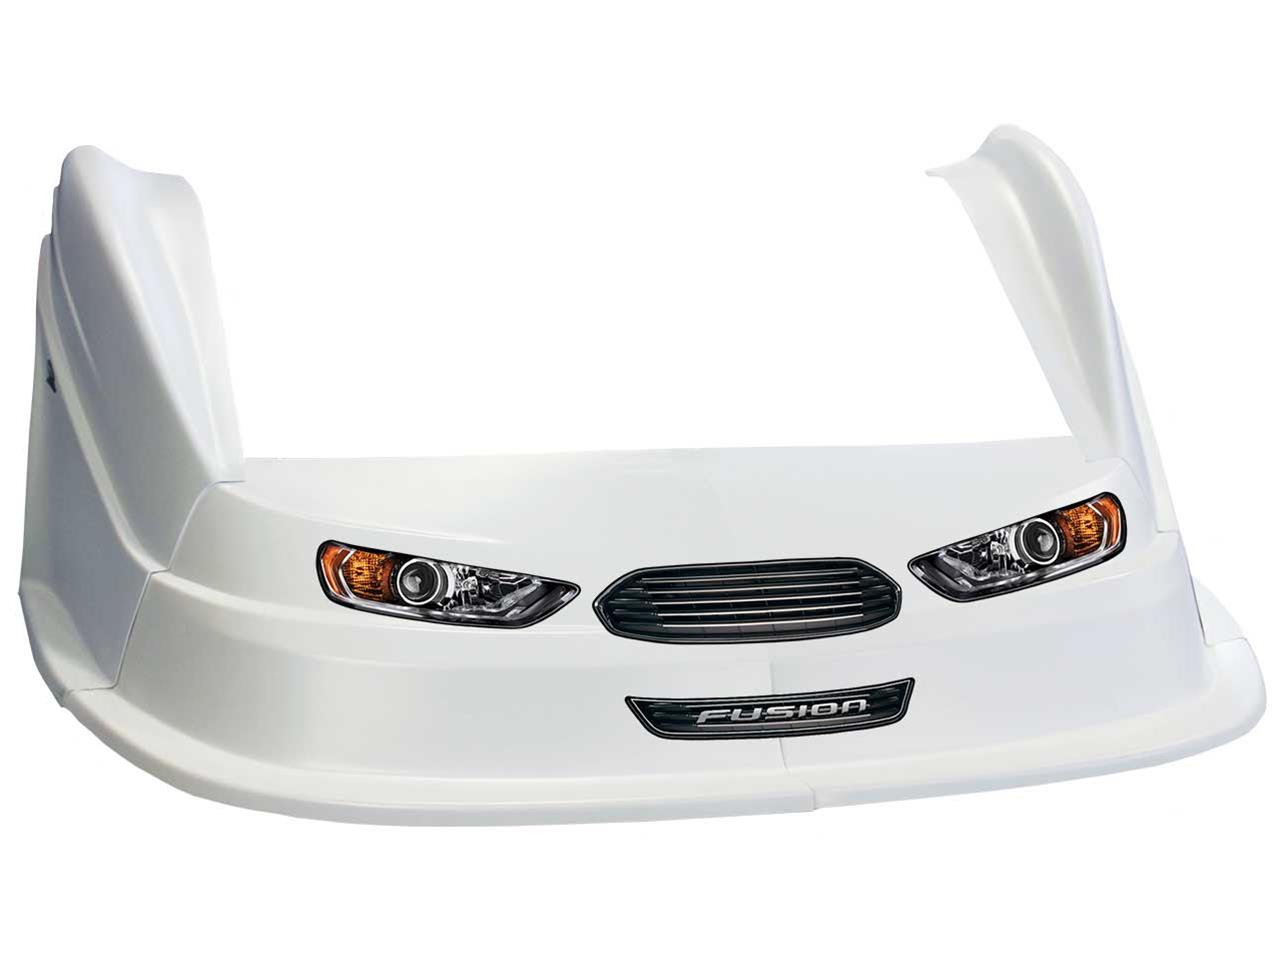 Picture of MD3 Evolution 1 Nose Kit - (Fusion)